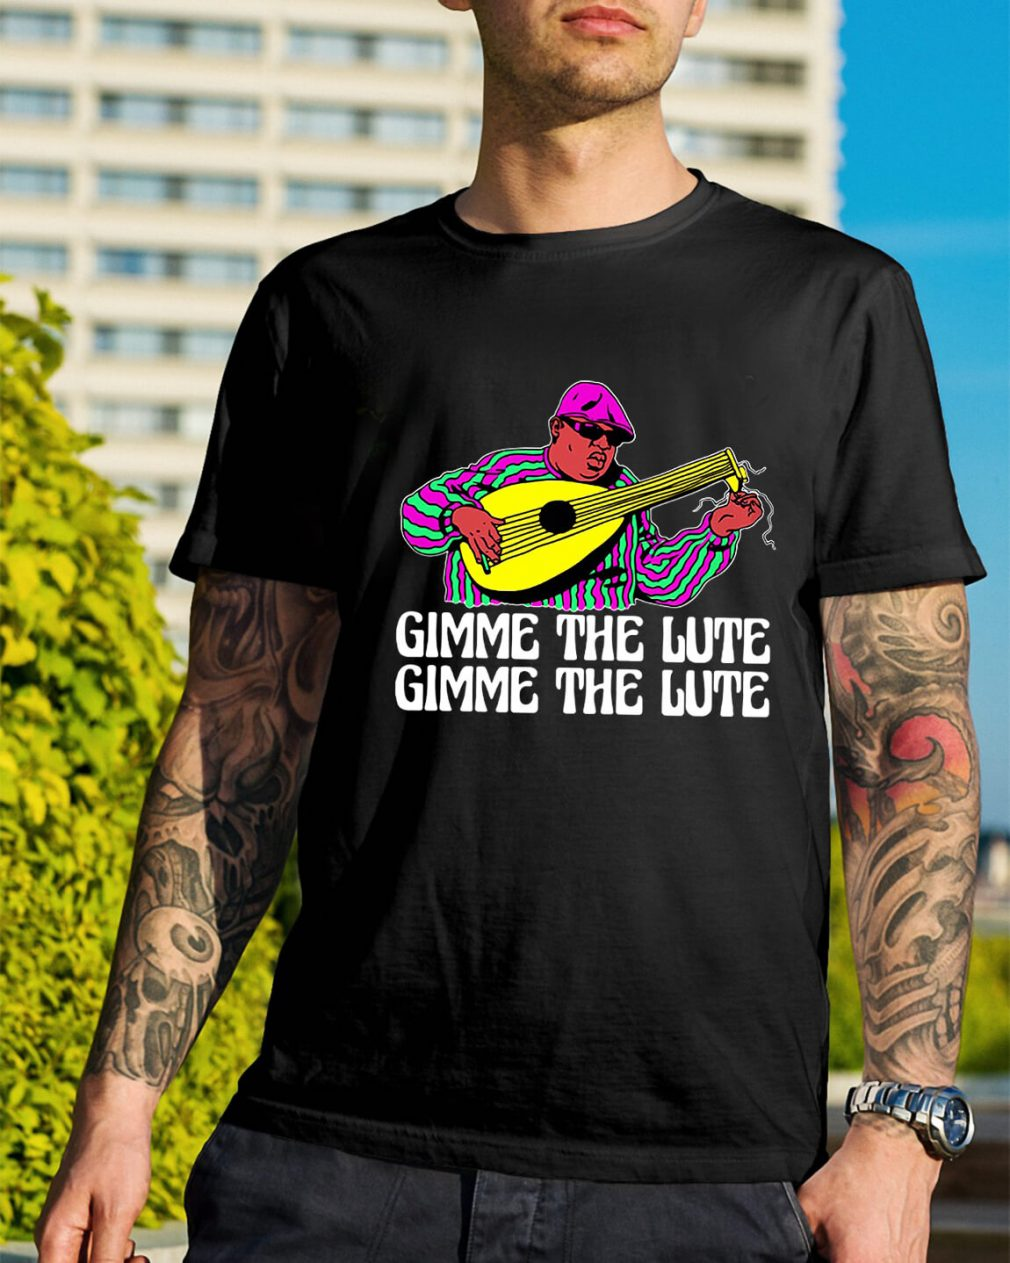 The Notorious B.I.G Gimme the Lute Gimme the Lute shirt